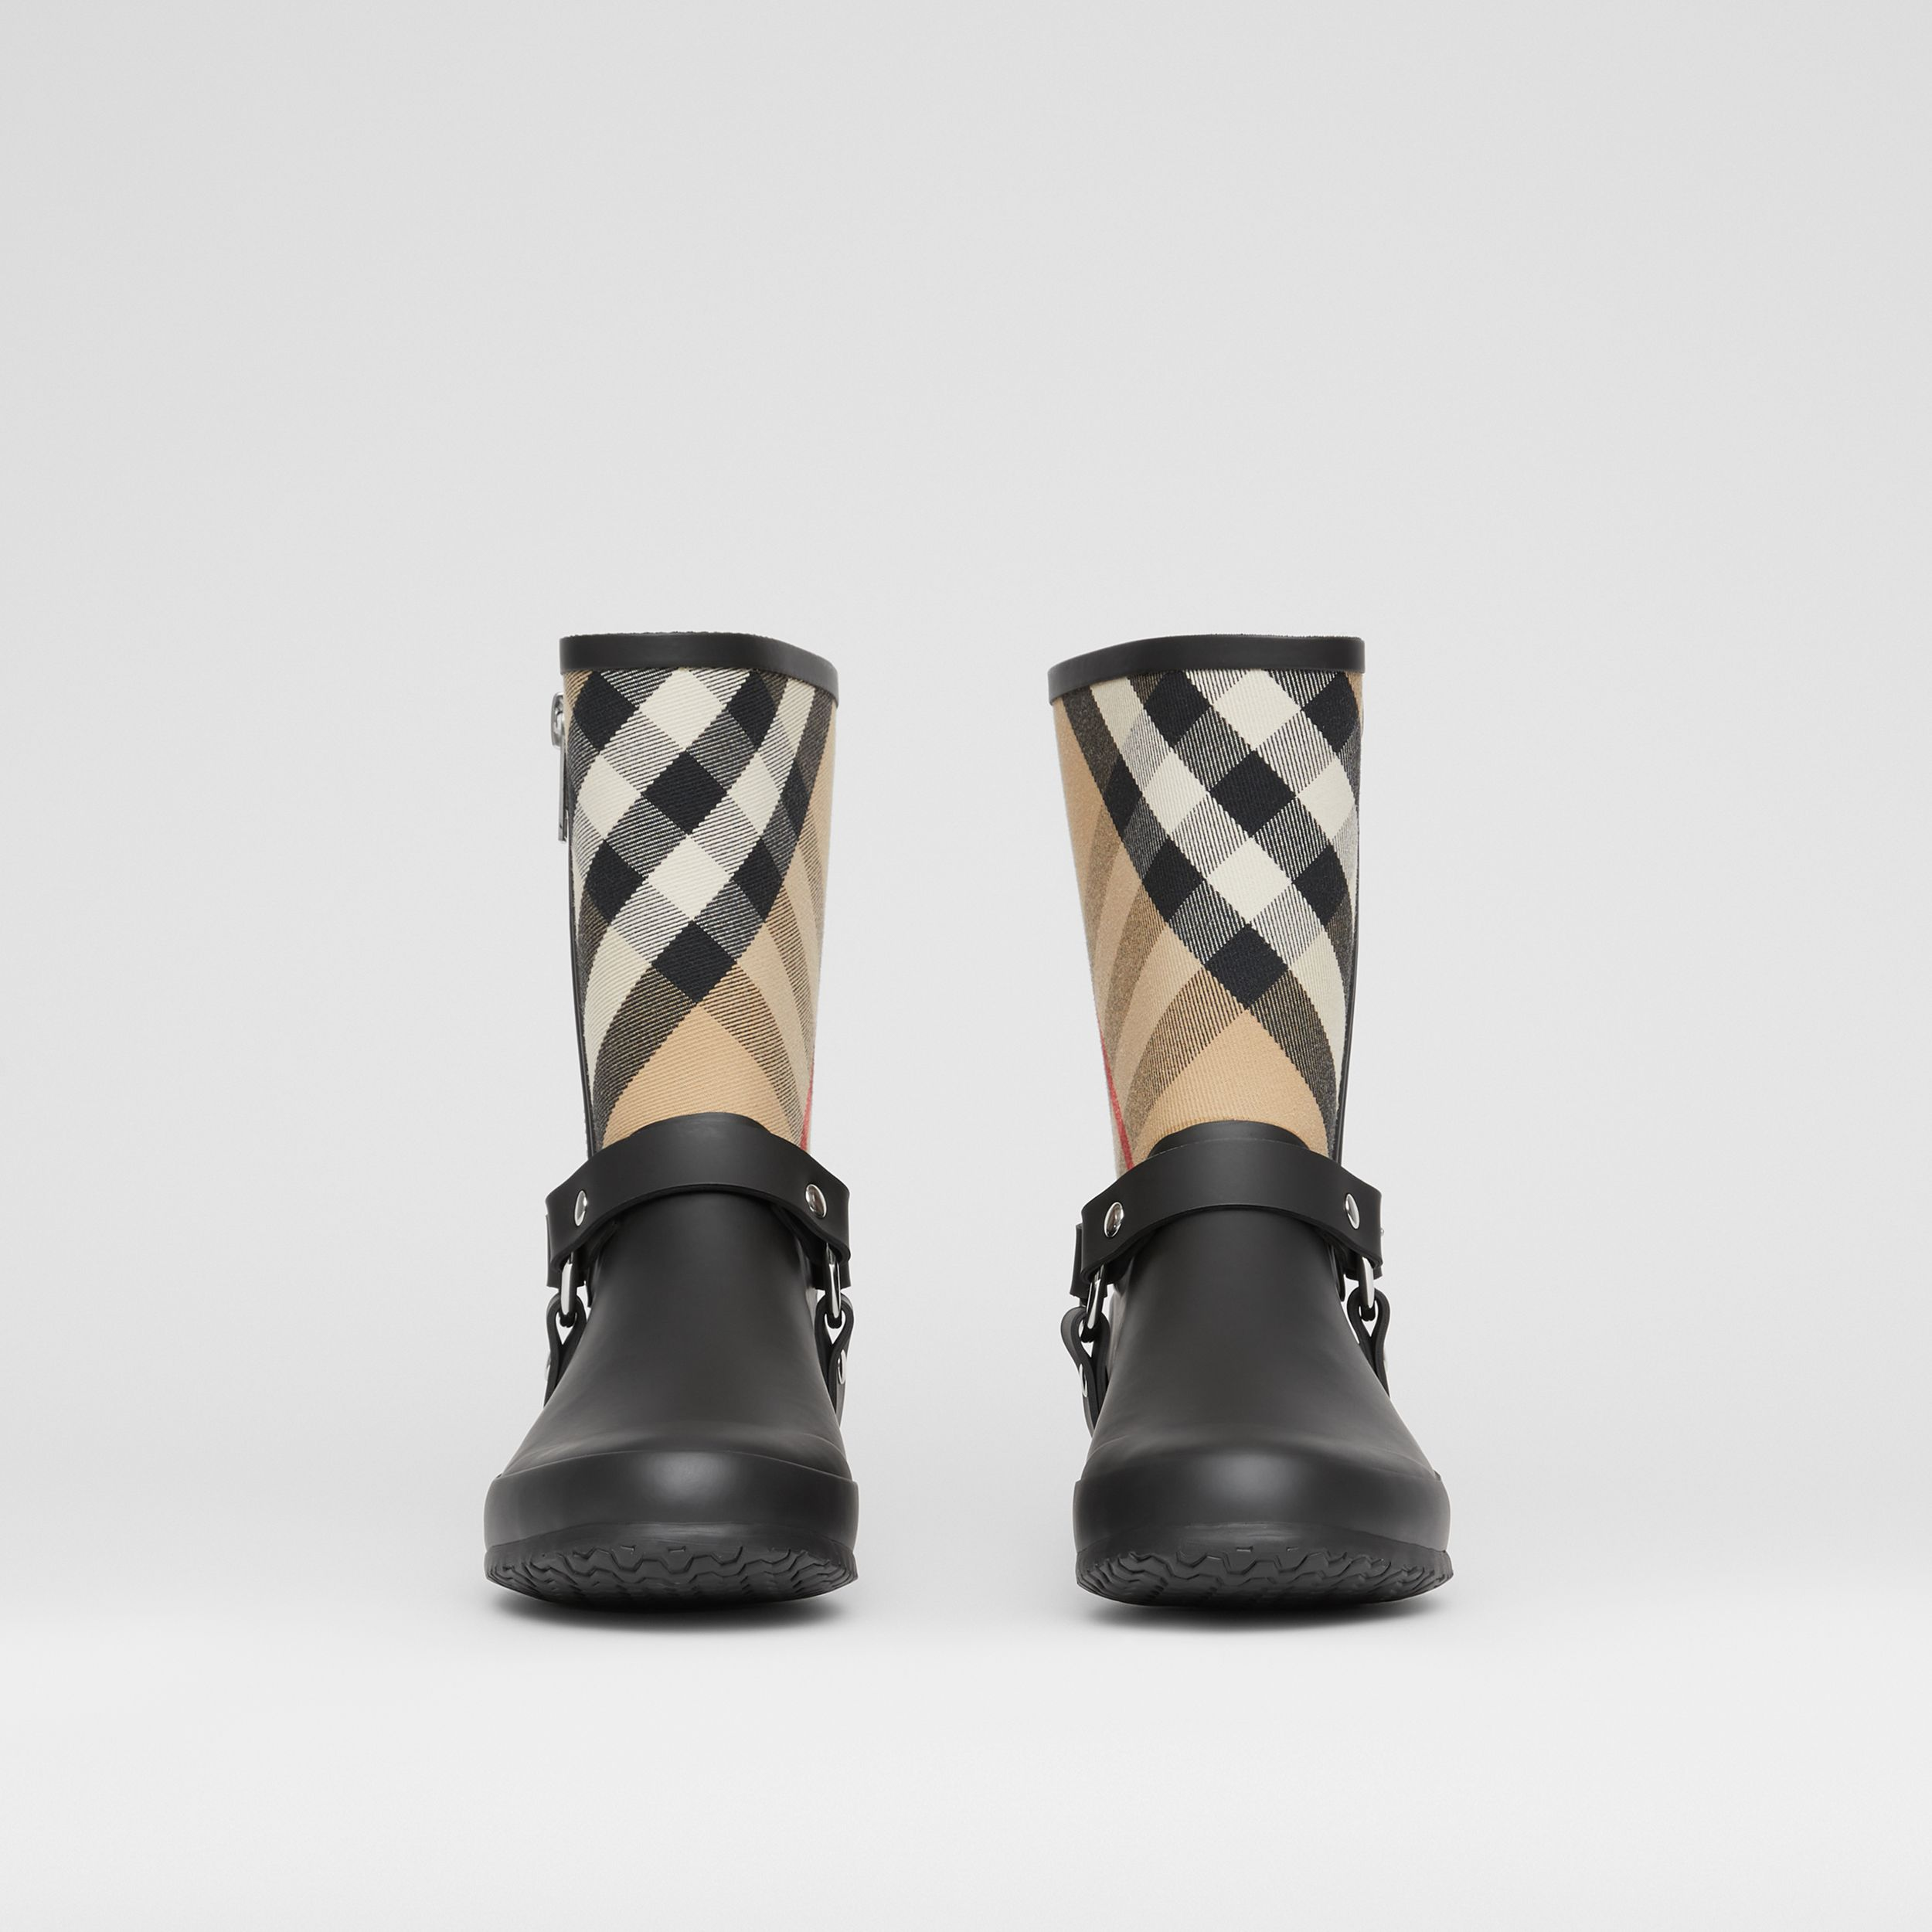 Strap Detail House Check Rubber Rain Boots in Black/archive Beige - Women | Burberry - 4